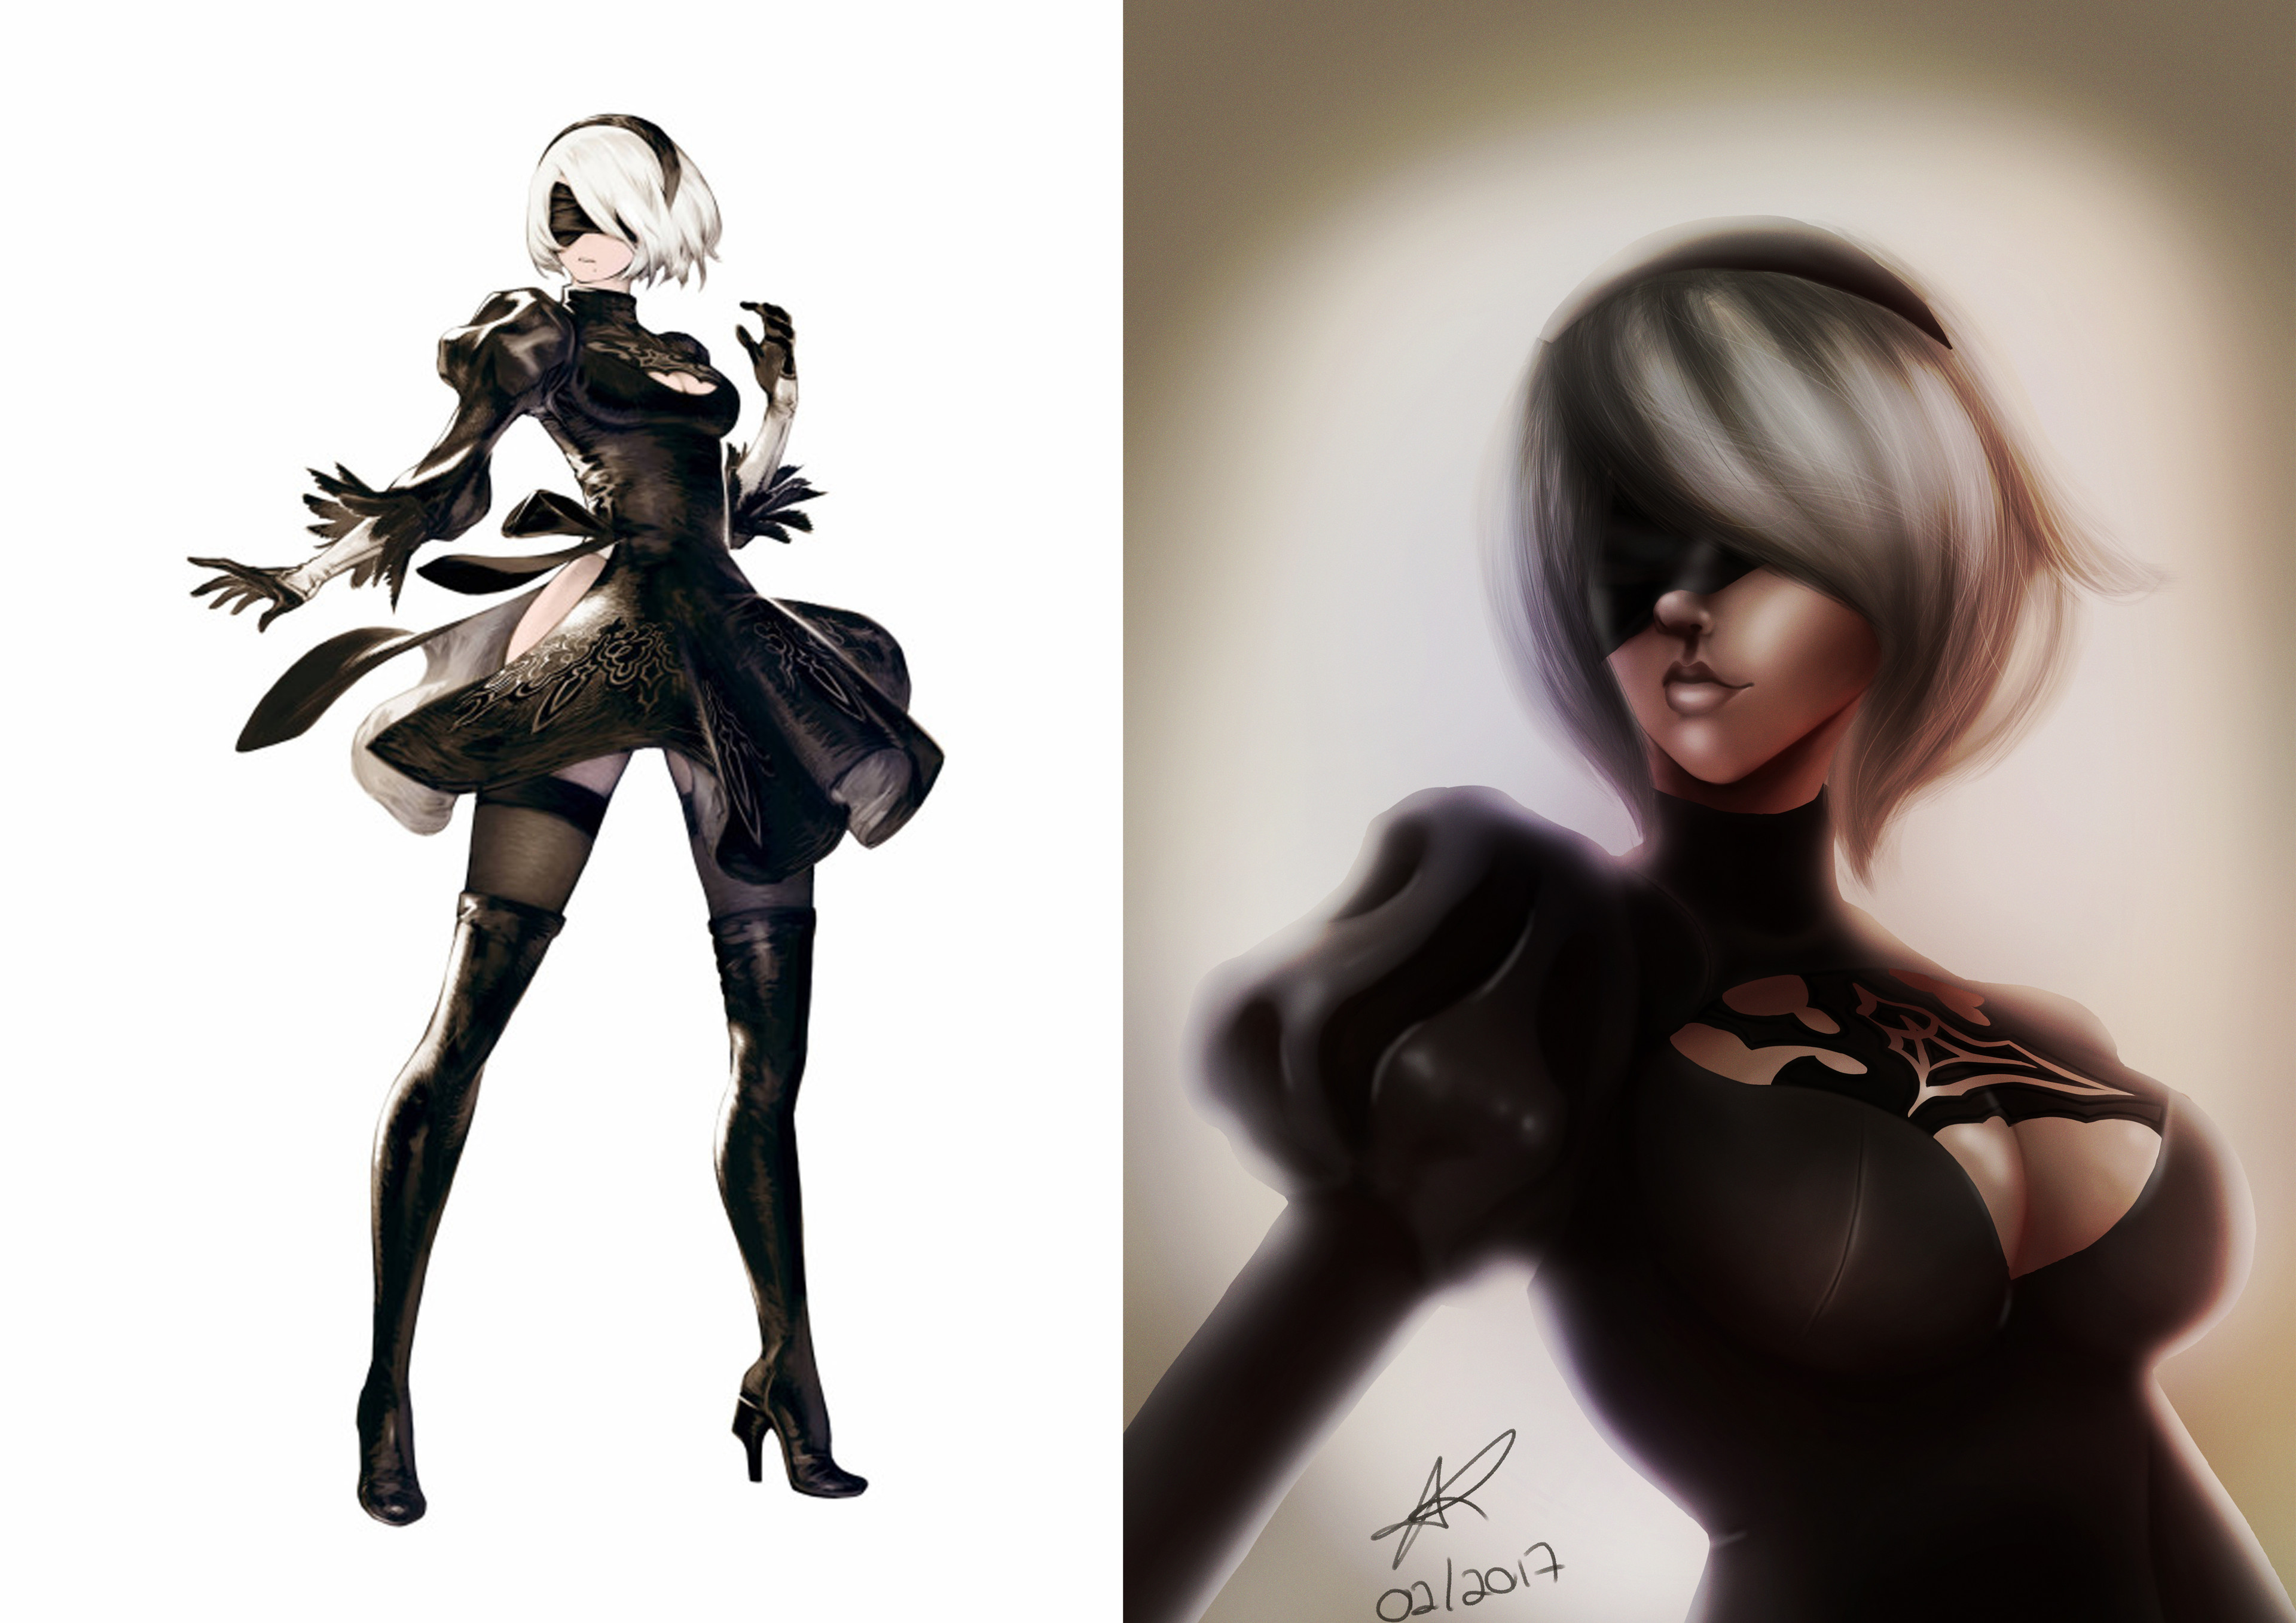 First study  Used an image of Akihiko Yoshida (left) as reference for my first sketch.